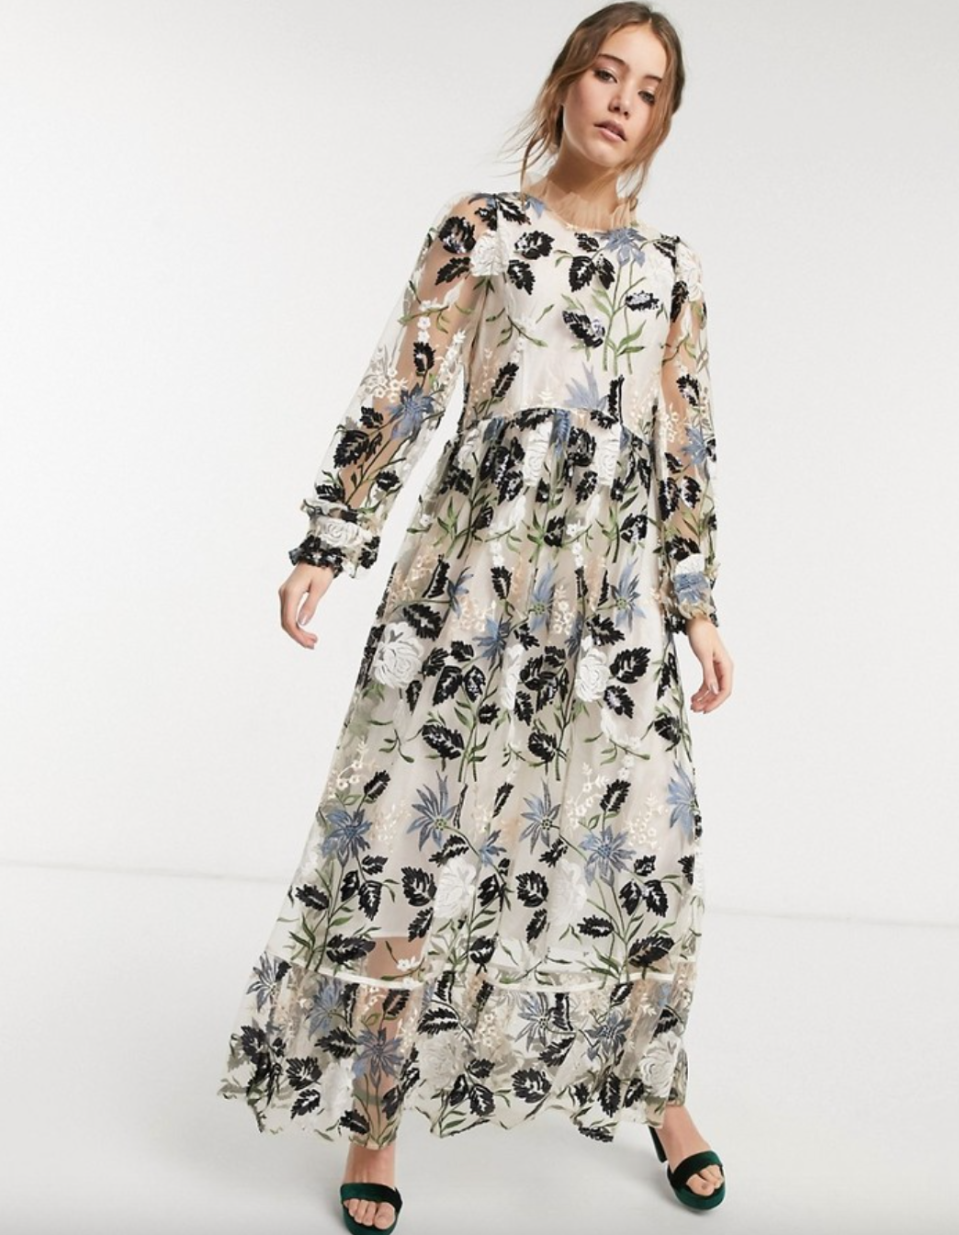 Dream Sister Jane Sheer Maxi Dress (Photo via ASOS)